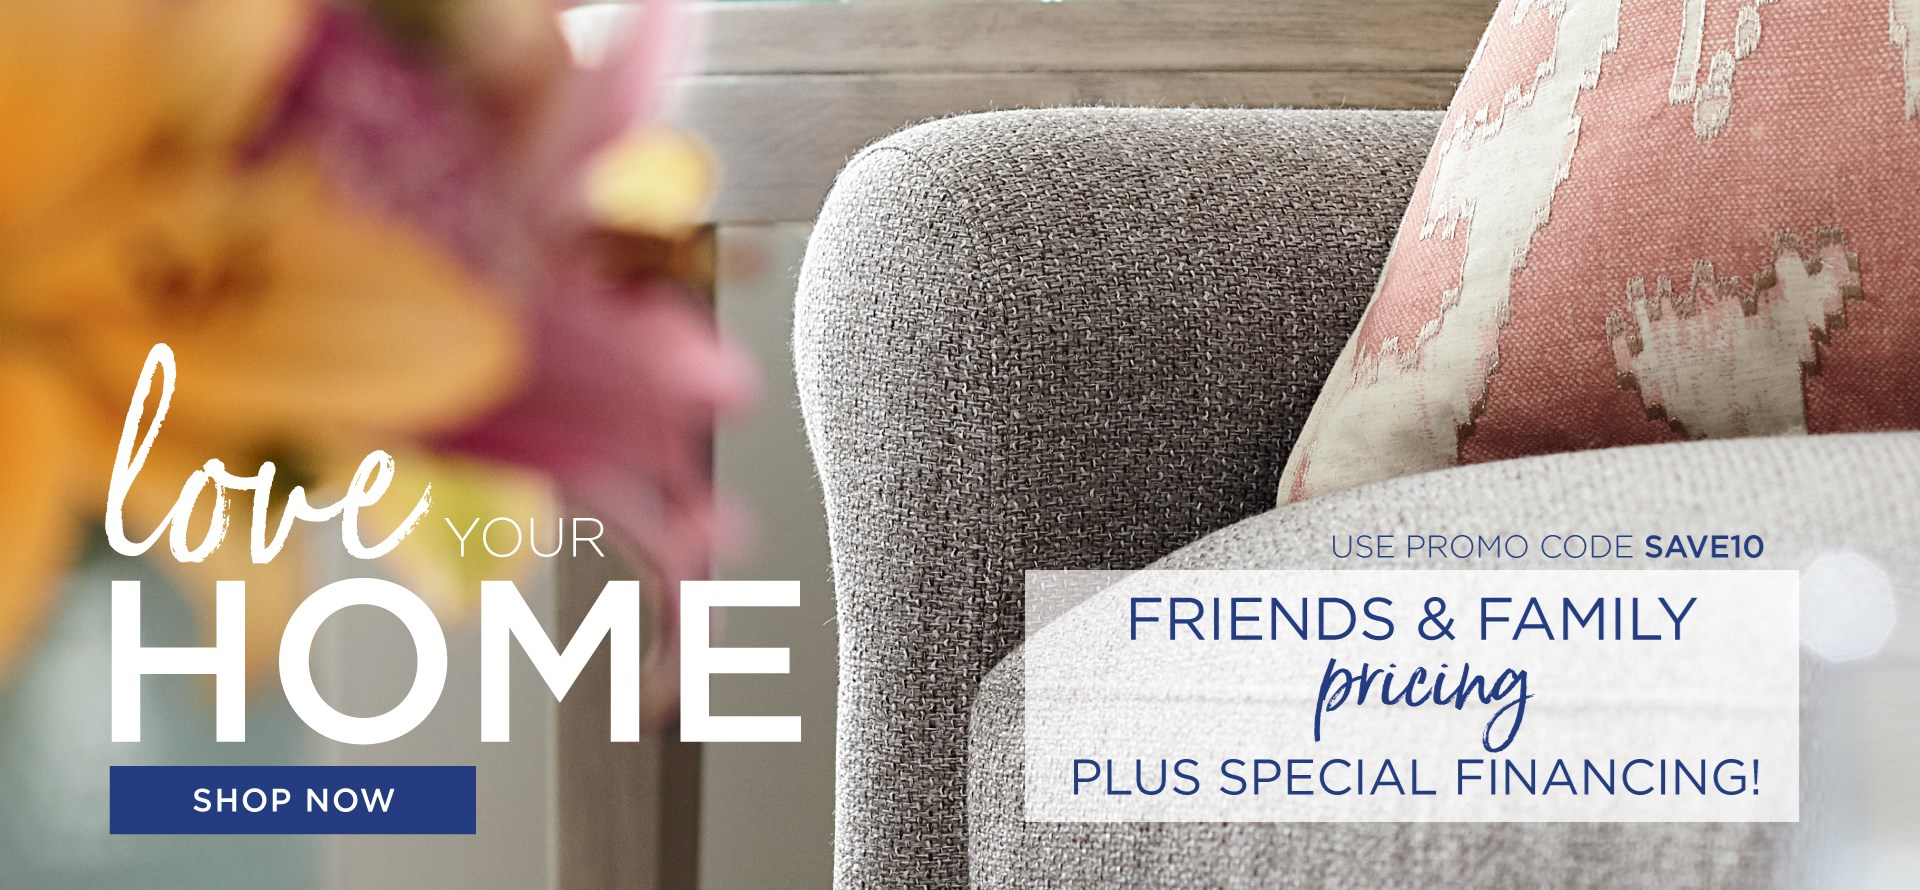 Love Your Home | Friends & Family Pricing Plus Special Financing | Use Promo code SAVE10